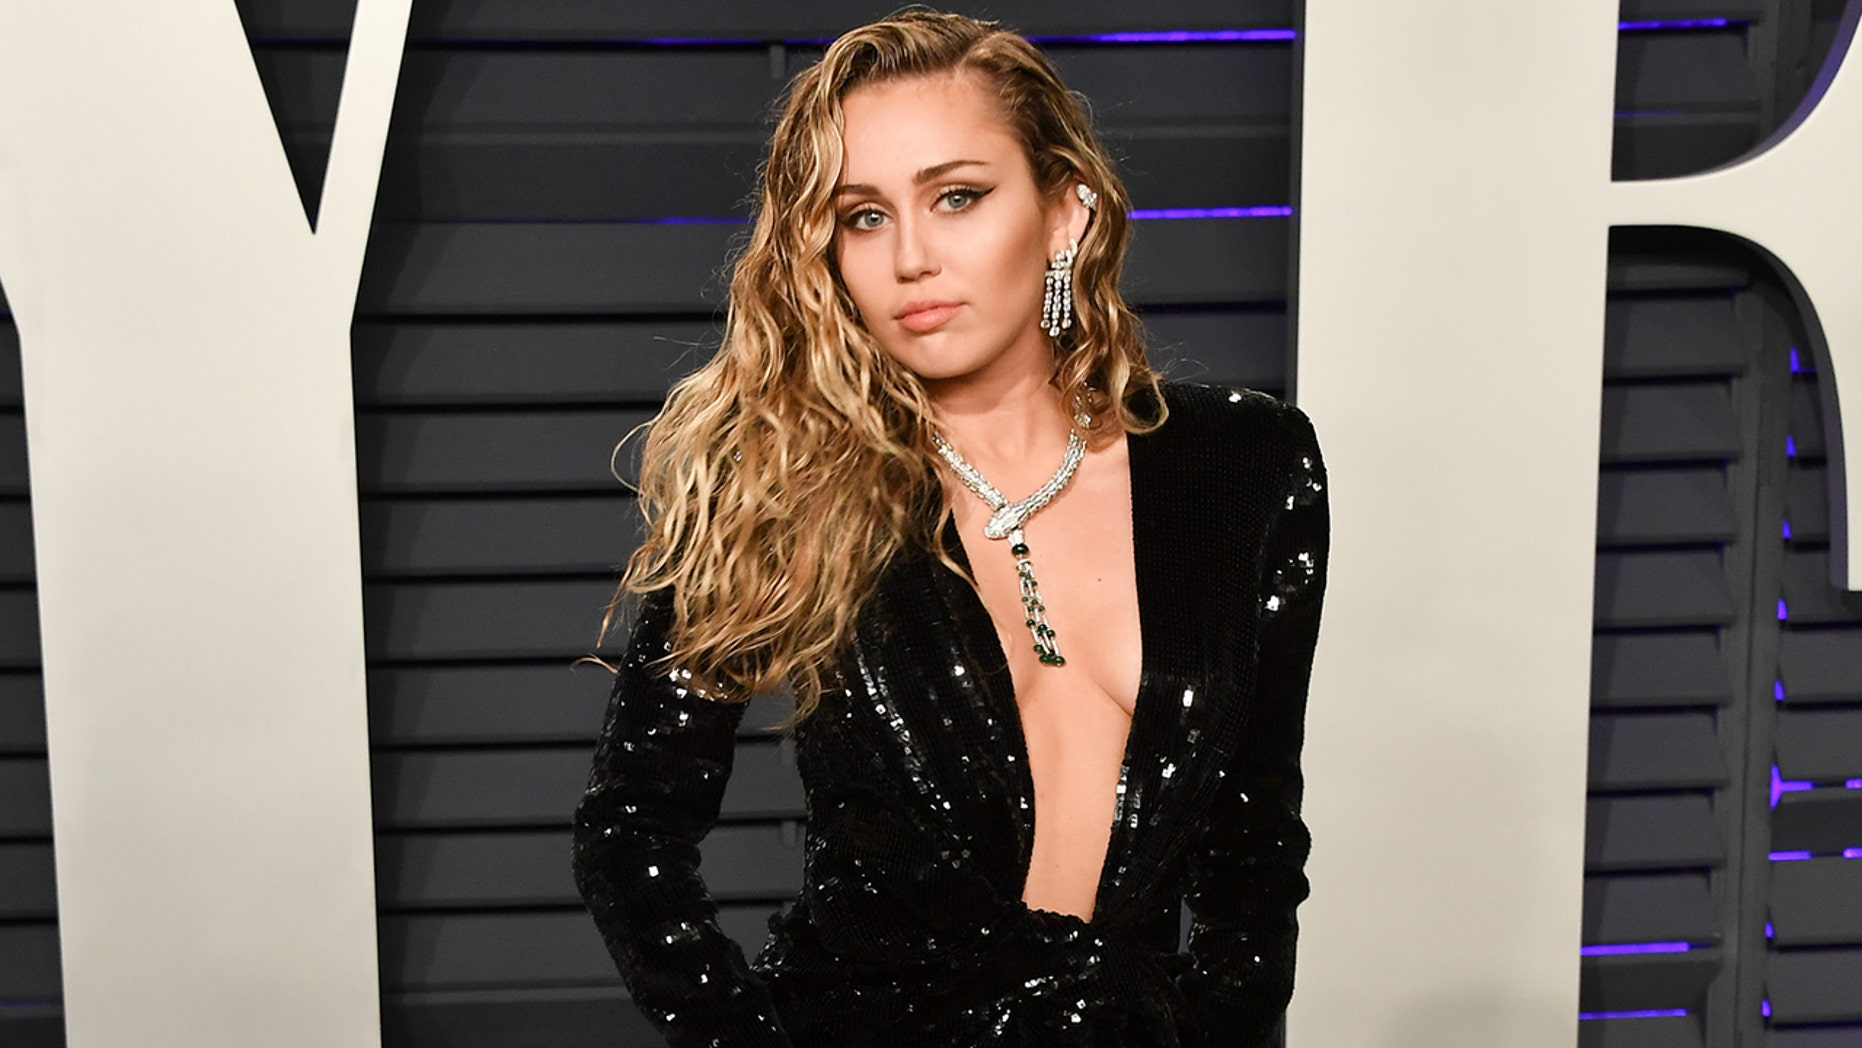 Miley Cyrus attends the 2019 Vanity Fair Oscar Party hosted by Radhika Jones at Wallis Annenberg Center for the Performing Arts on Feb. 24, 2019 in Beverly Hills, Calif.